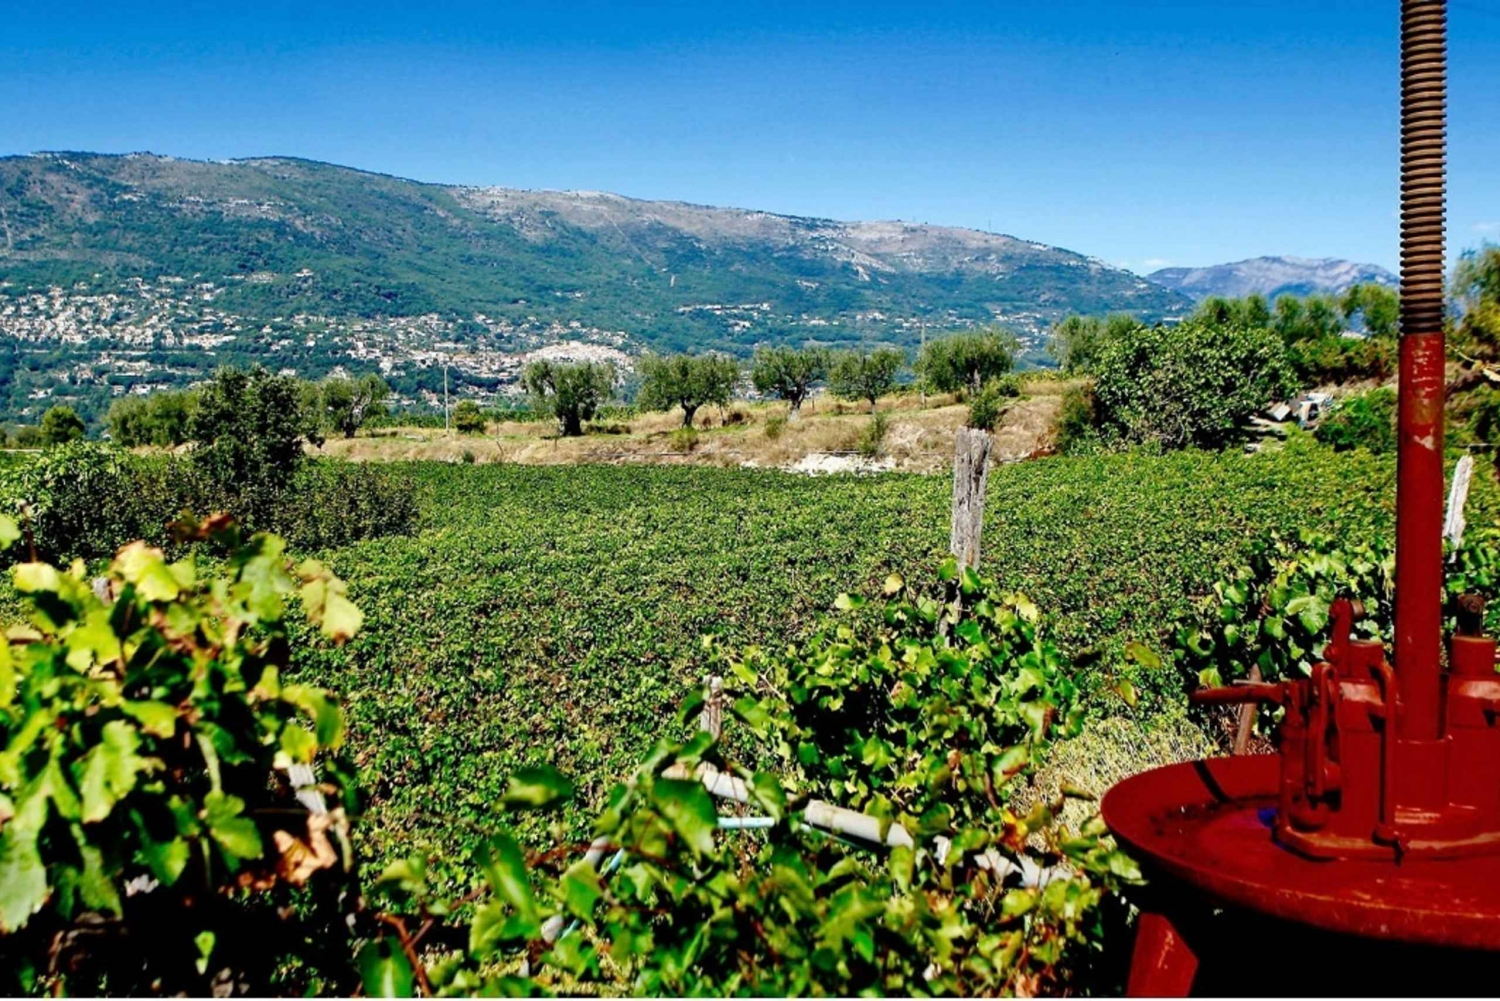 From Nice: Half-Day Wine Tour in the Bellet Wine Region